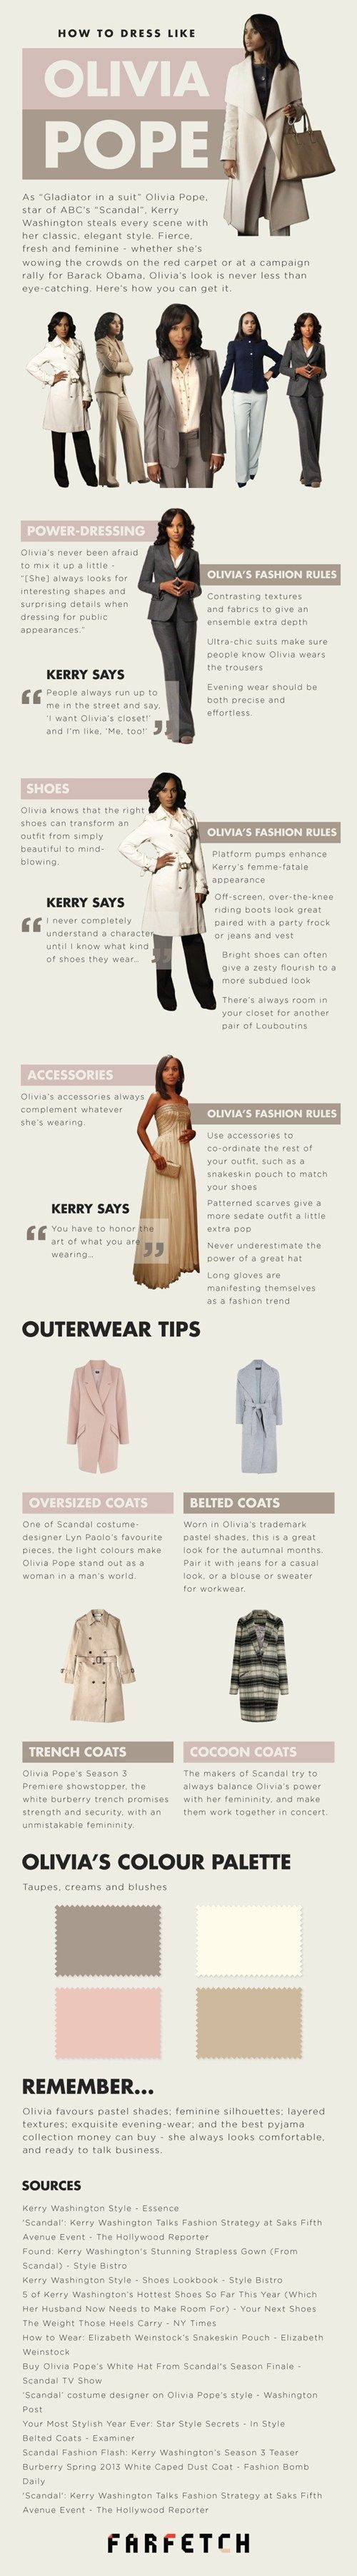 How to Dress Like Olivia Pope?